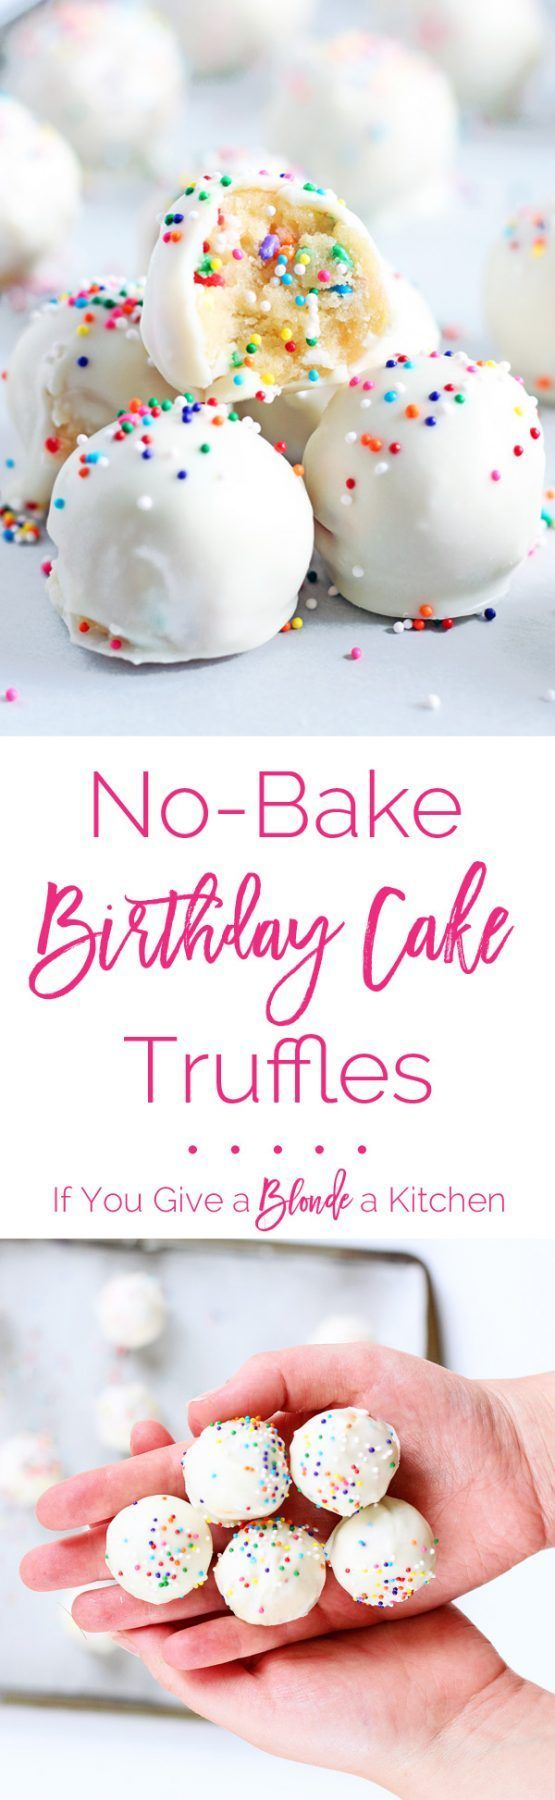 No bake birthday cake truffles from www.ifyougiveablondeakitchen.com (birthday cake flavors)